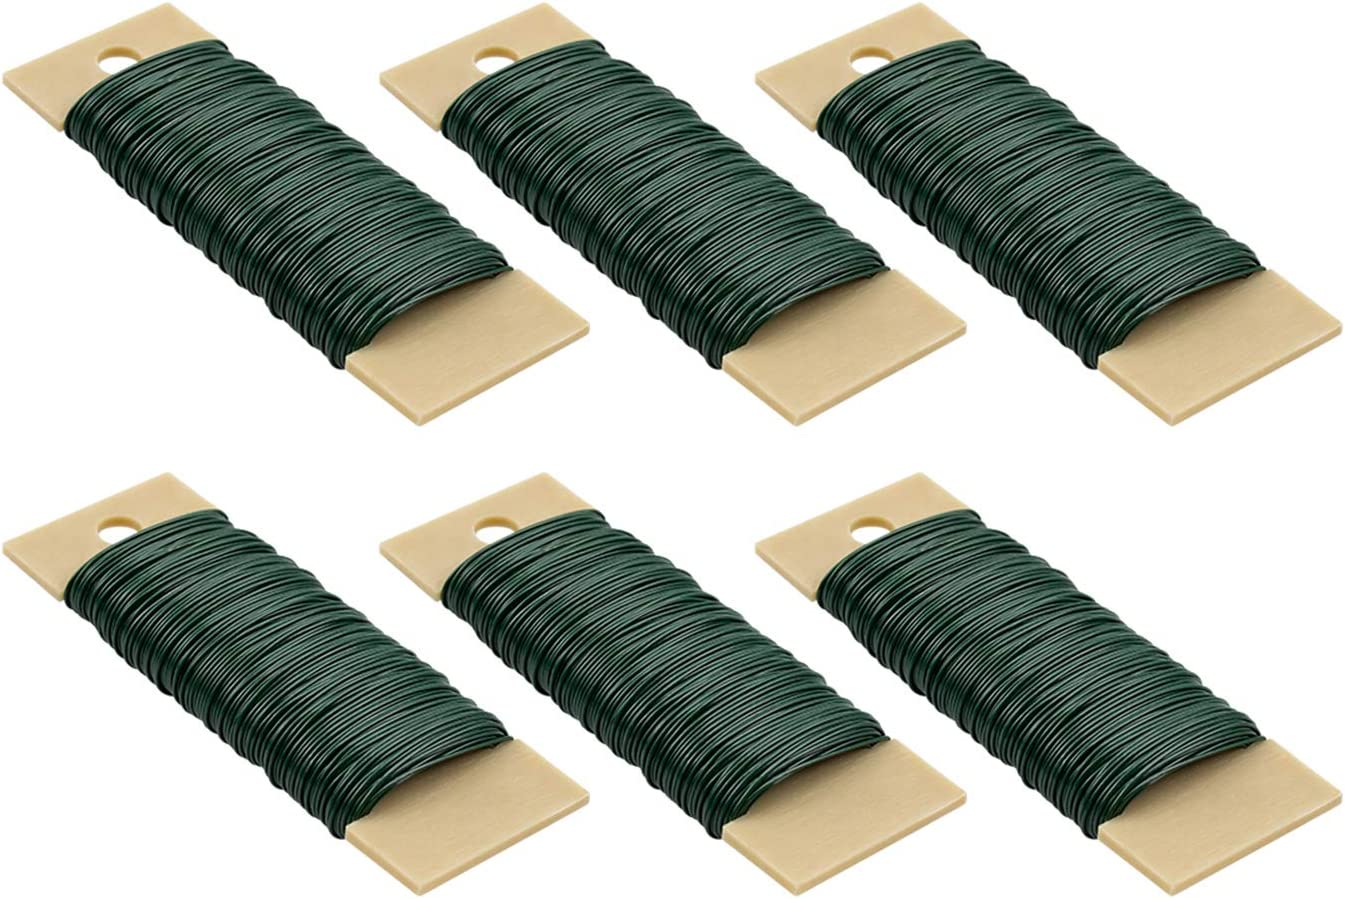 Foraineam 6-Pack 228 Yards 22 Gauge Green Floral Wire Flexible Paddle Wire for Crafts, Wreaths, Garland and Floral Arrangements